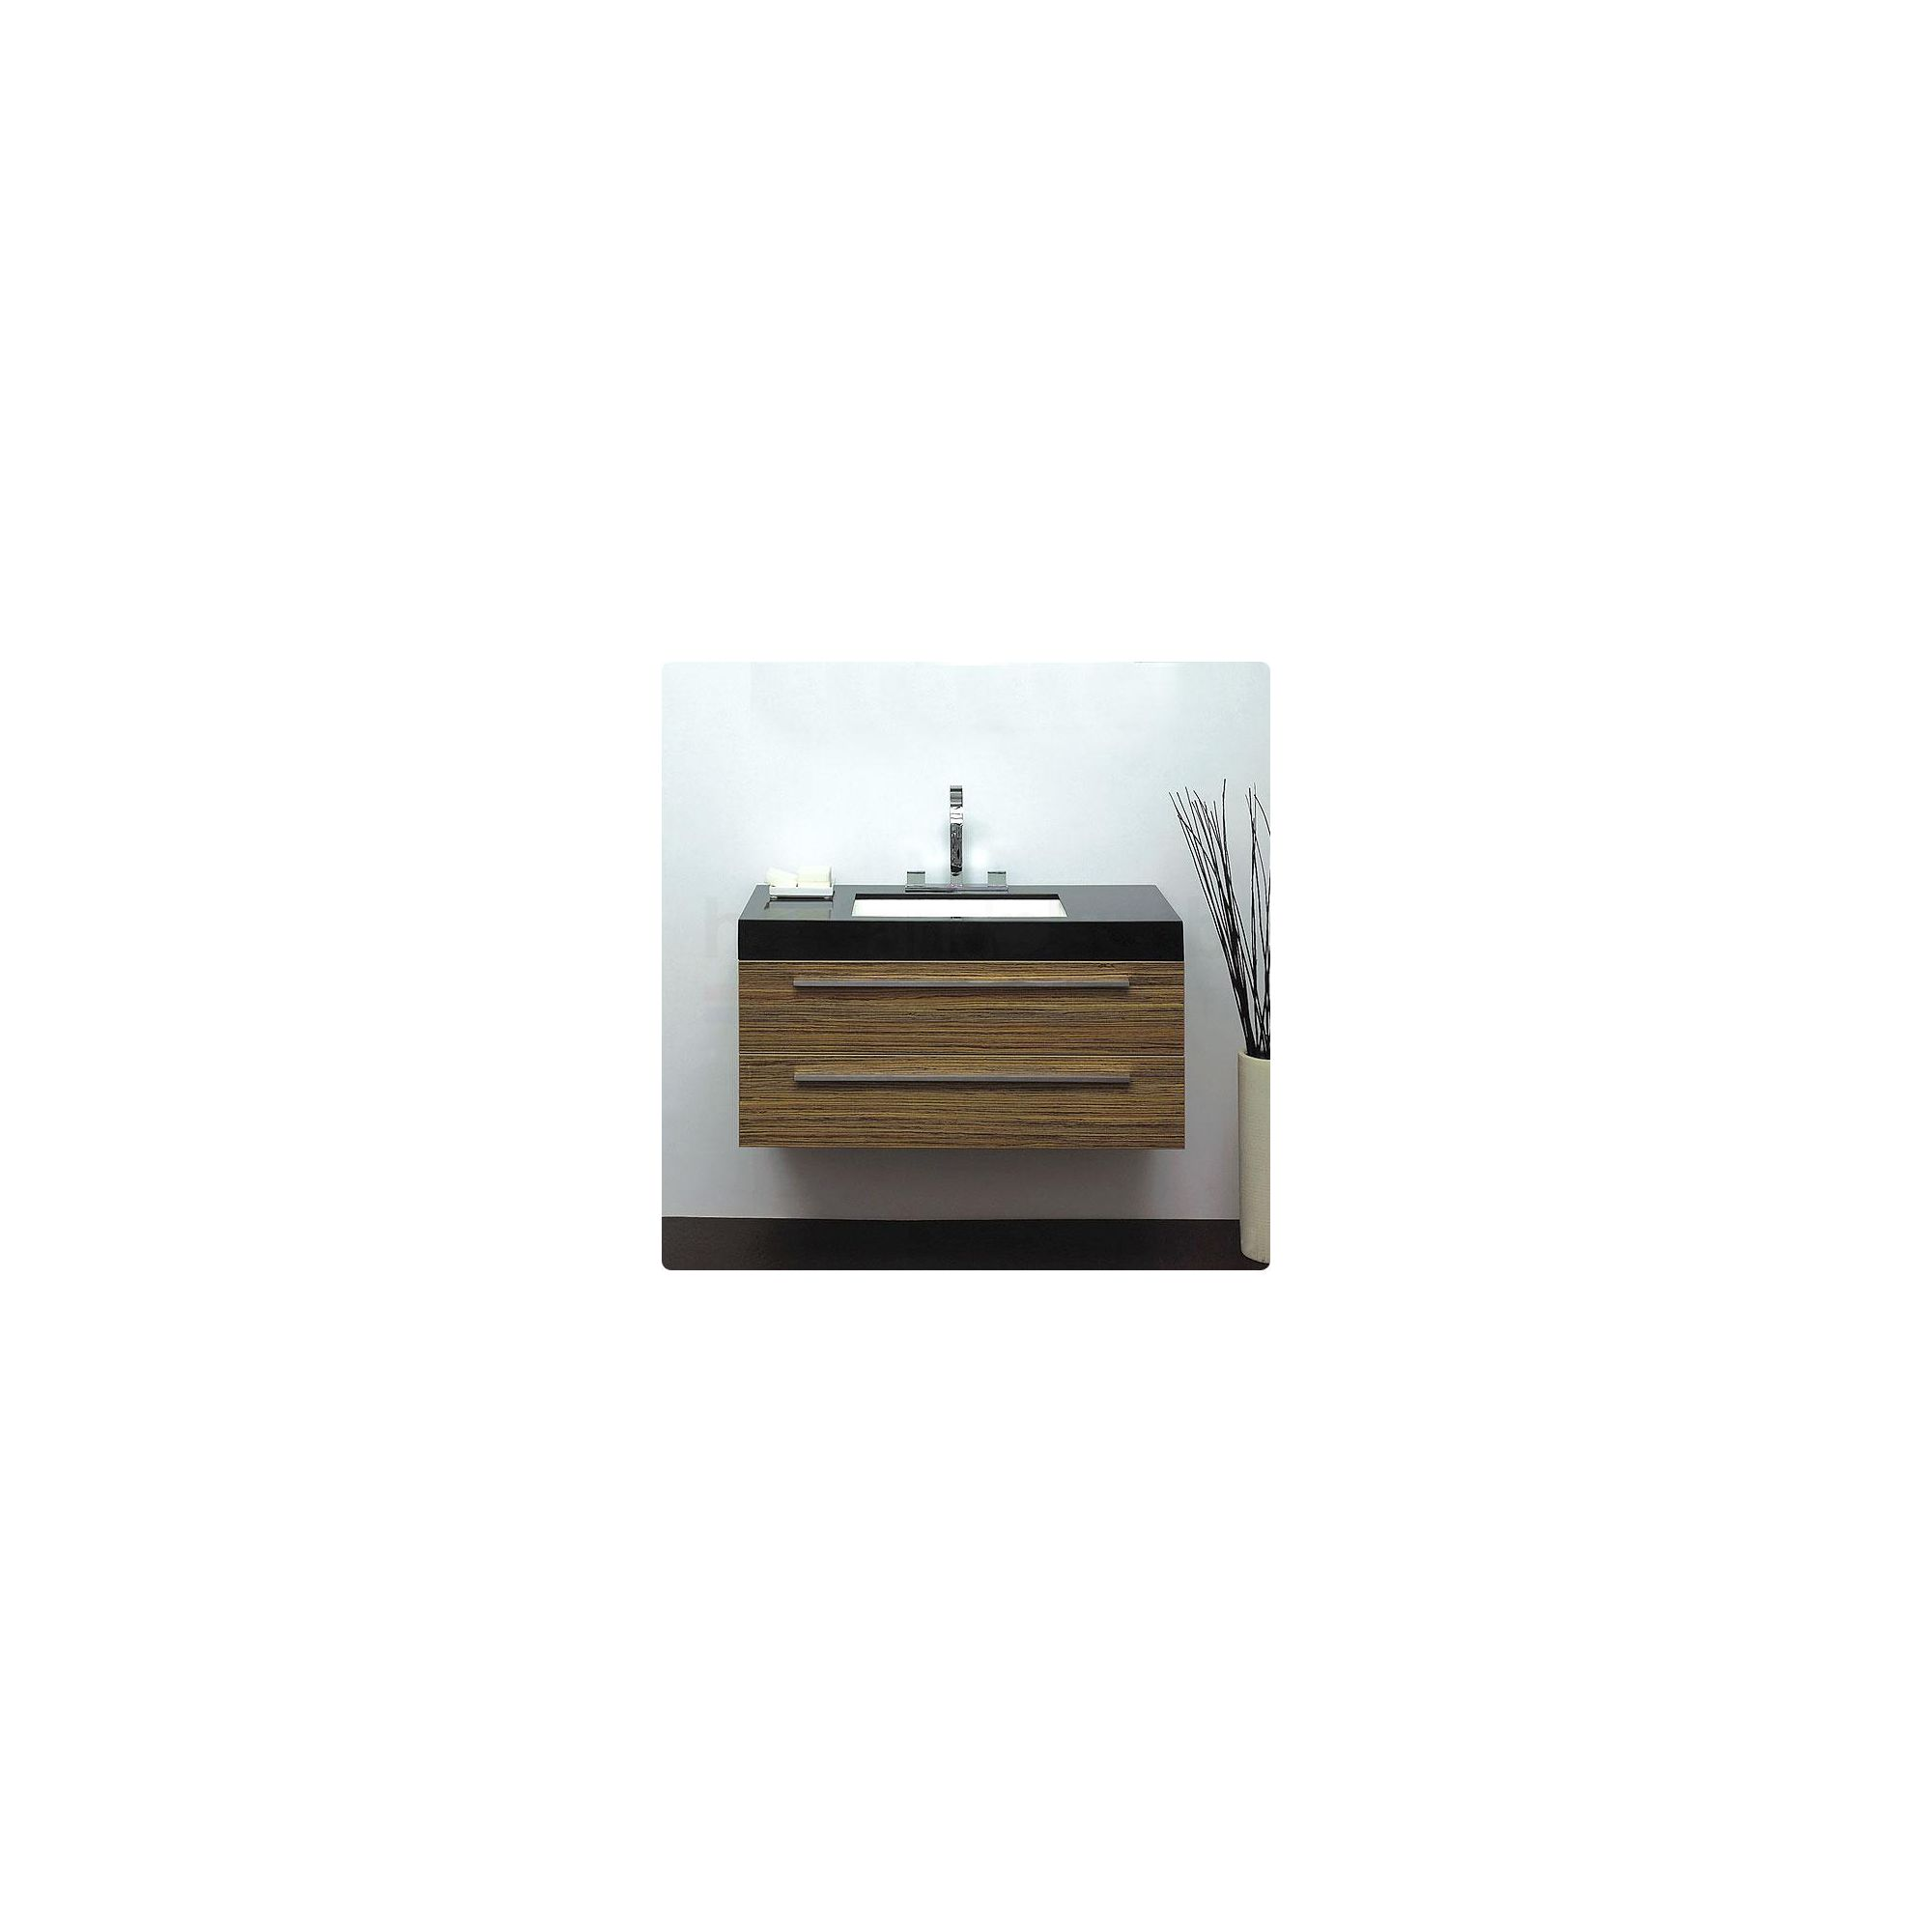 Durab Bella Bathroom ZEBRANO Vanity Unit (Wall Mounted) including Basin 1000mm Wide x 478mm Deep